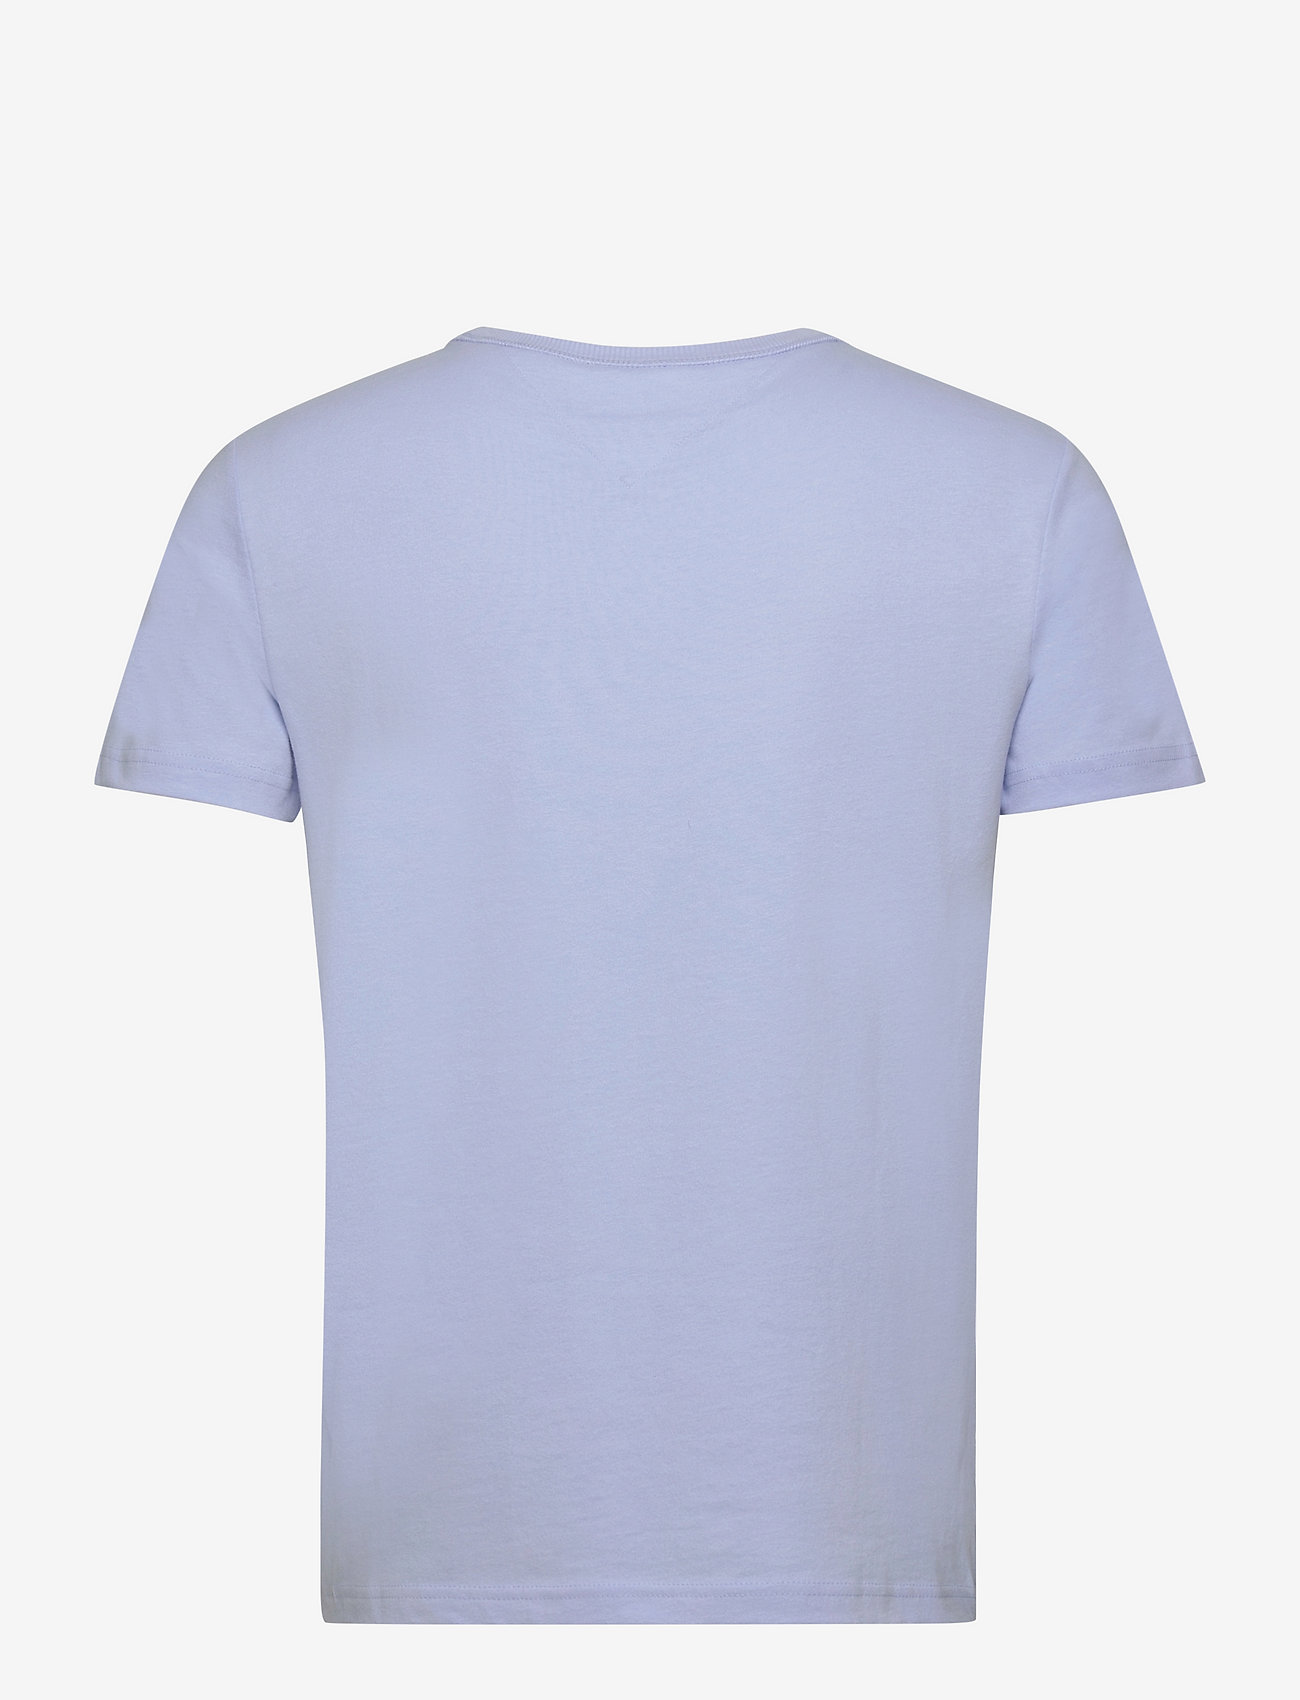 Tommy Hilfiger - RECYCLED COTTON TEE - t-shirts basiques - sweet blue - 1